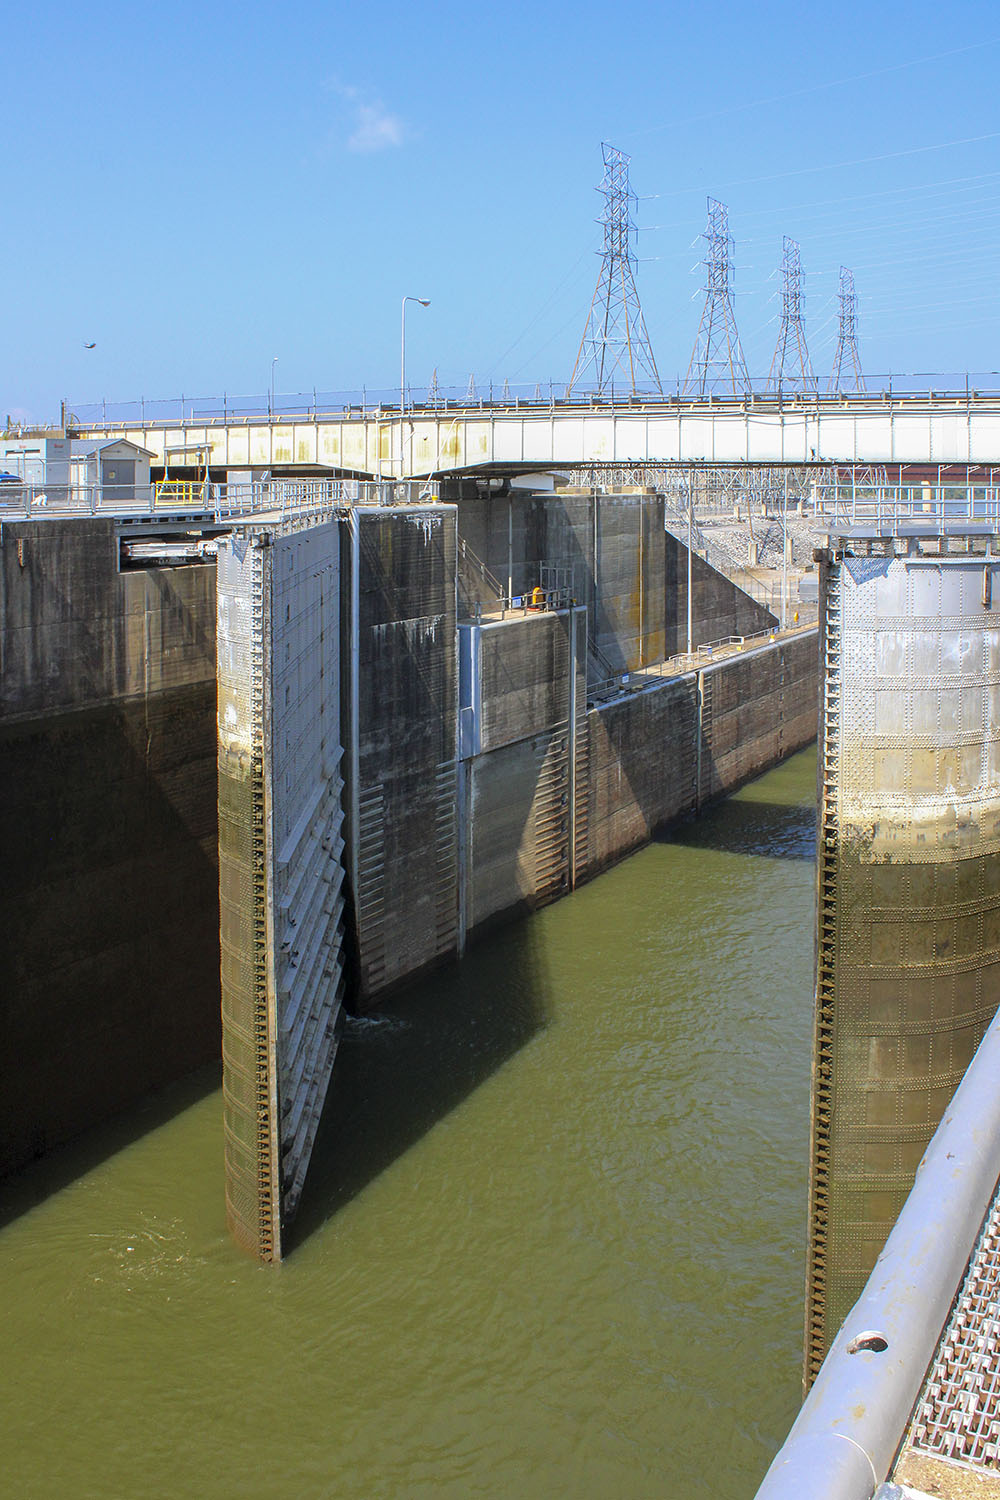 Downstream miter gates close at Kentucky Lock. (Photo by Shelley Byrne)